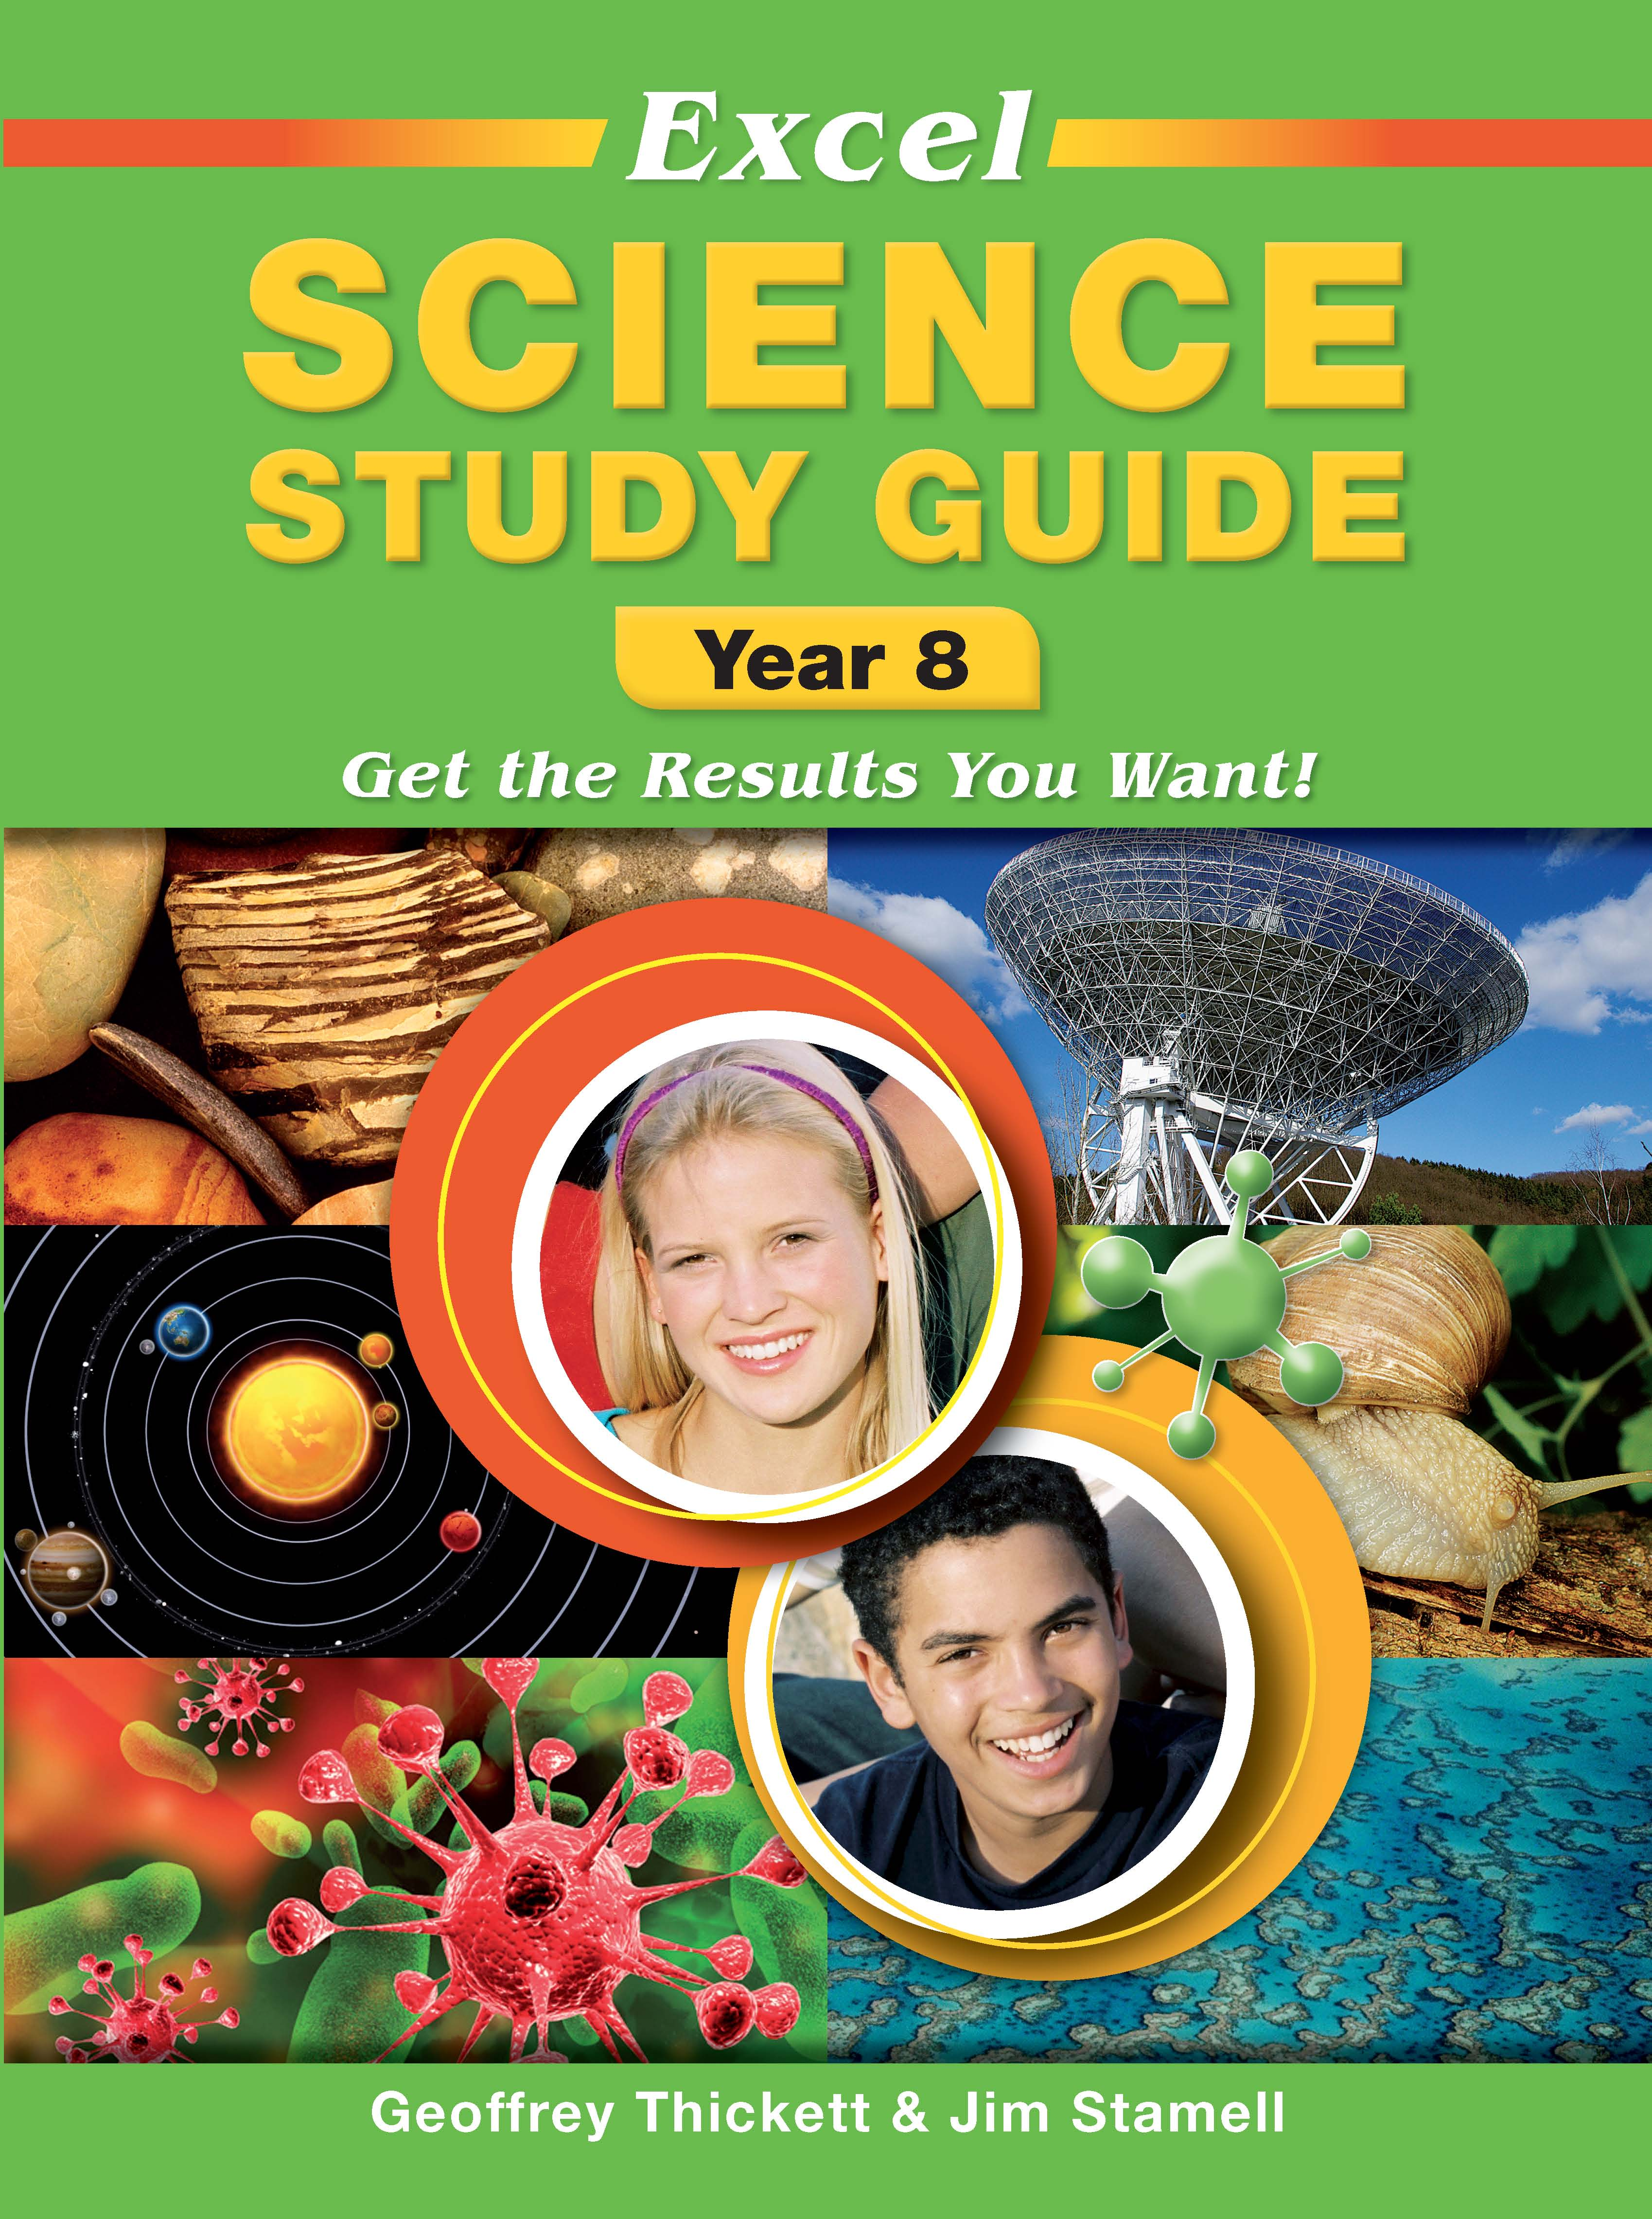 Excel Science Study Guide Year 8